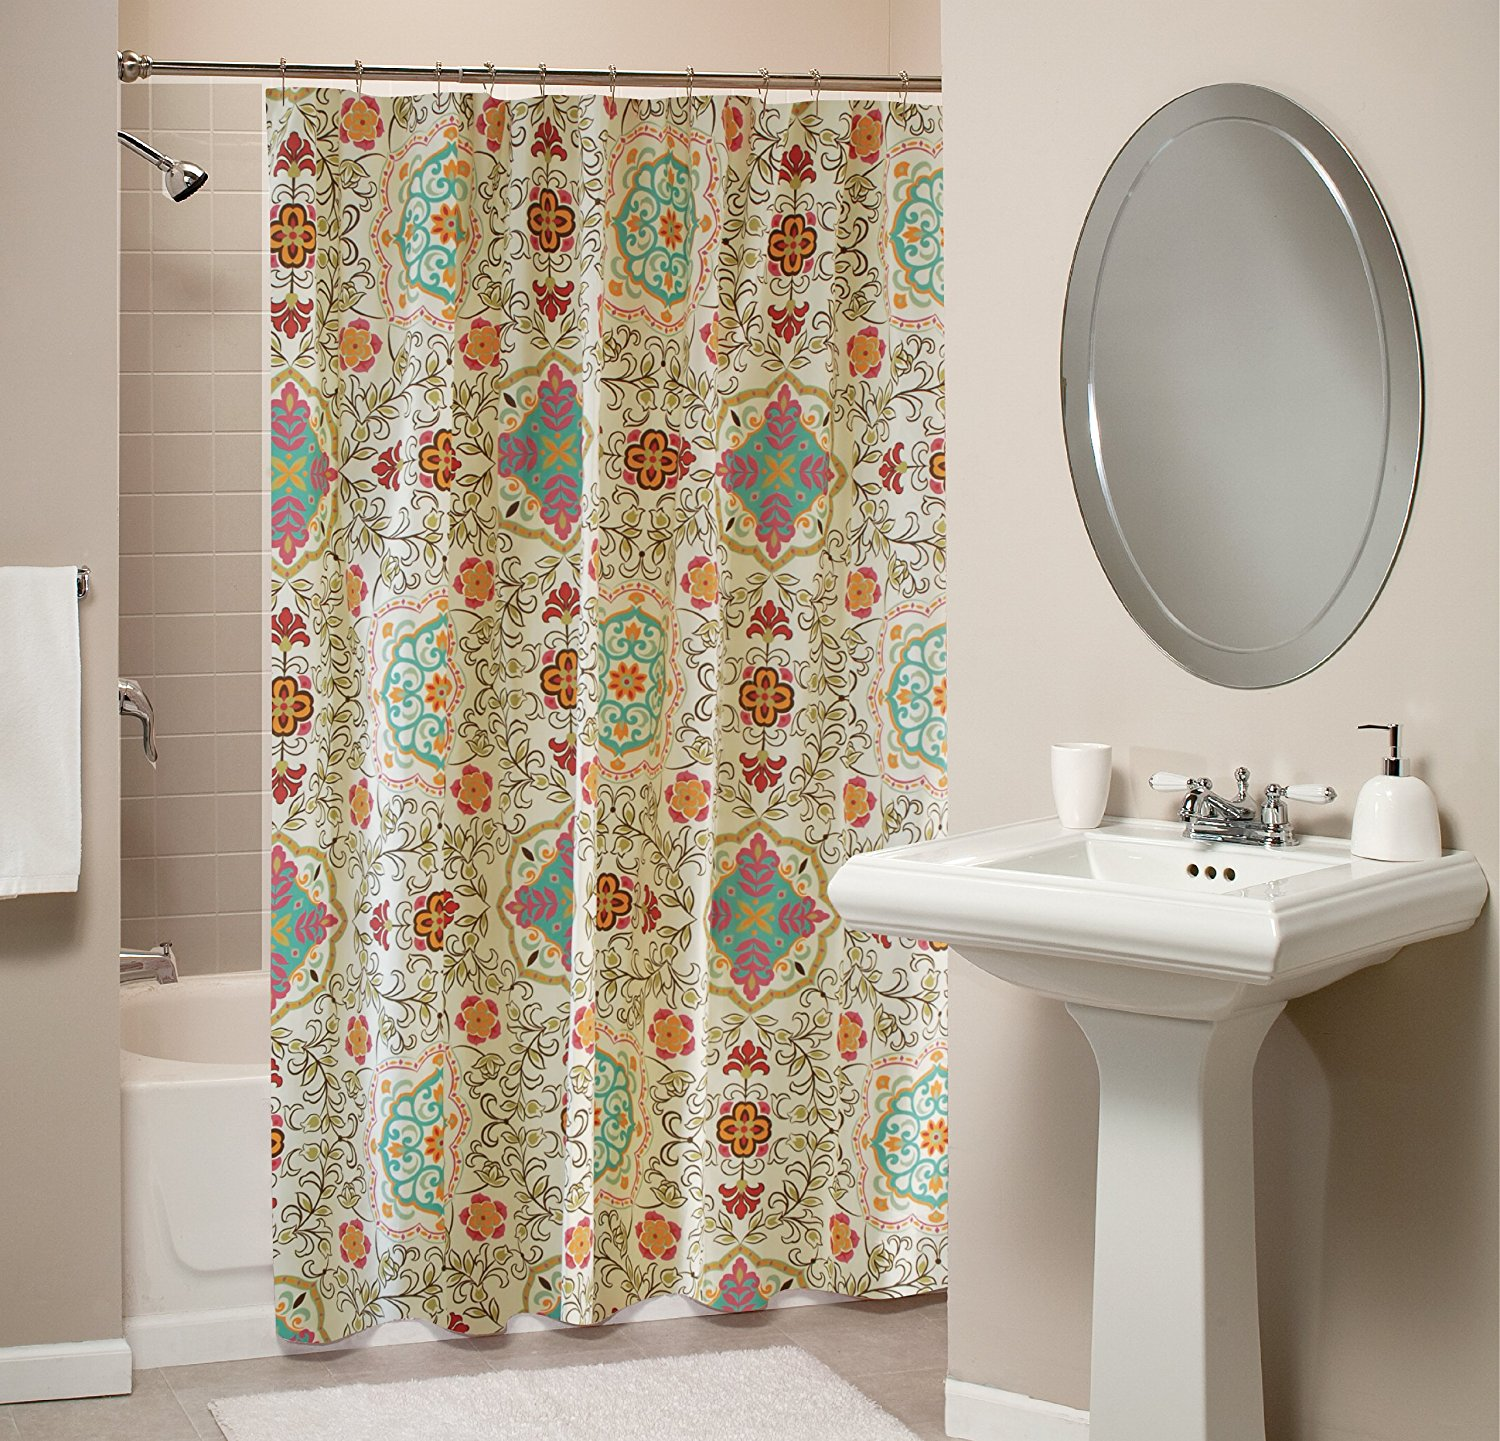 Ikea Shower Curtain | Ikea Shower Curtain | Pocket Shower Curtain